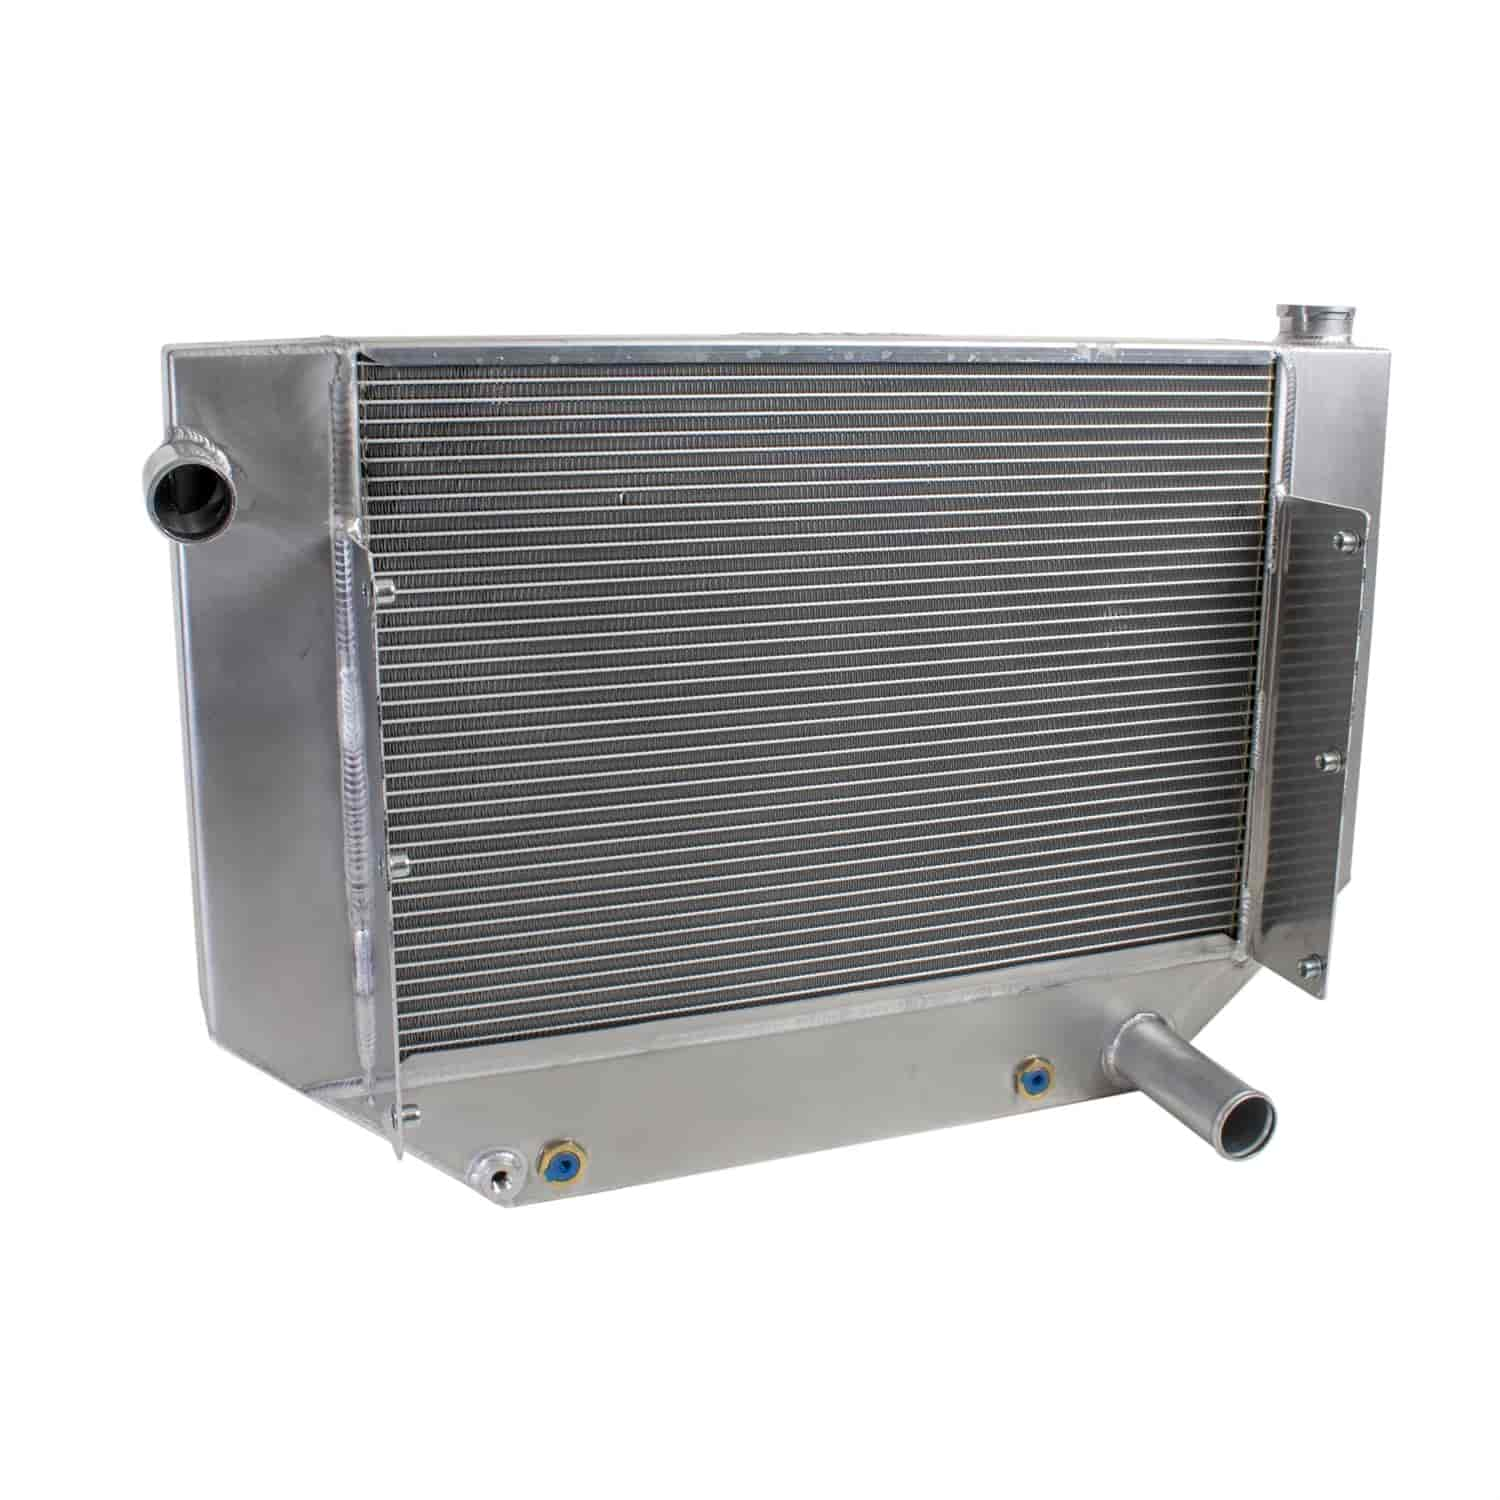 Griffin Radiators 8-70200